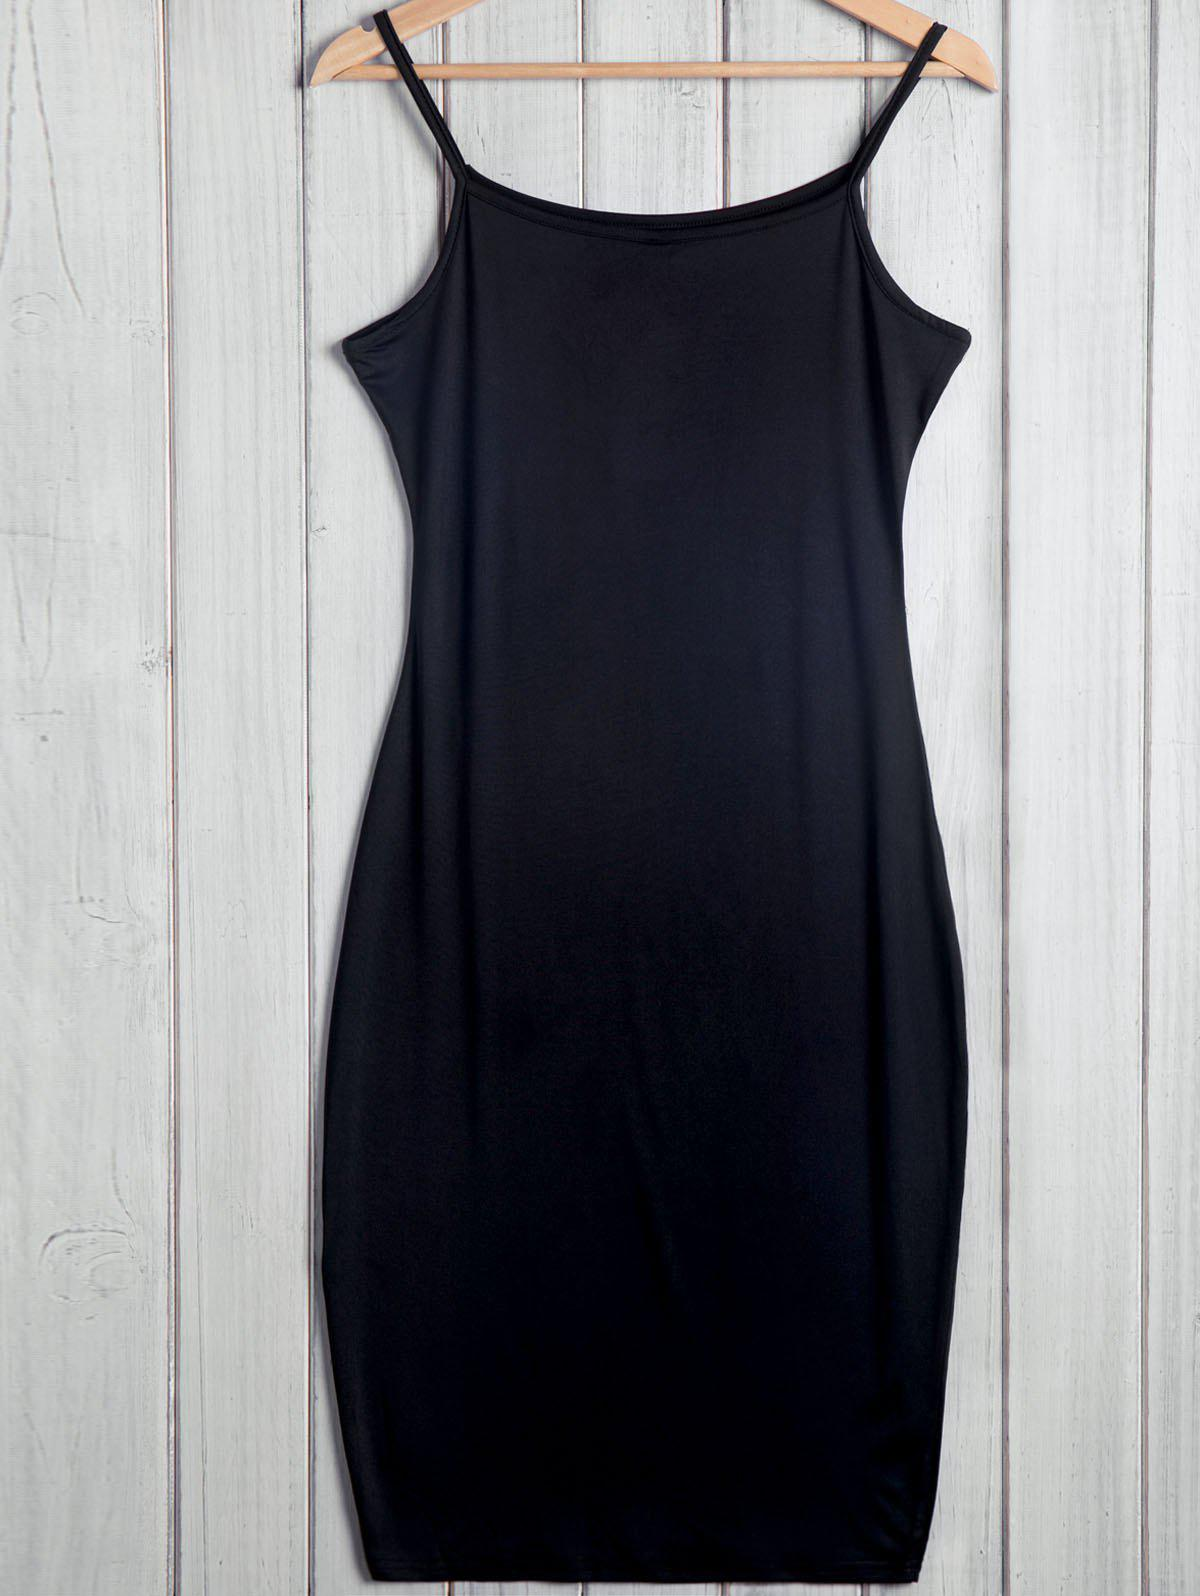 Simple Style Spaghetti Strap Sleeveless Solid Color Bodycon Women's Dress